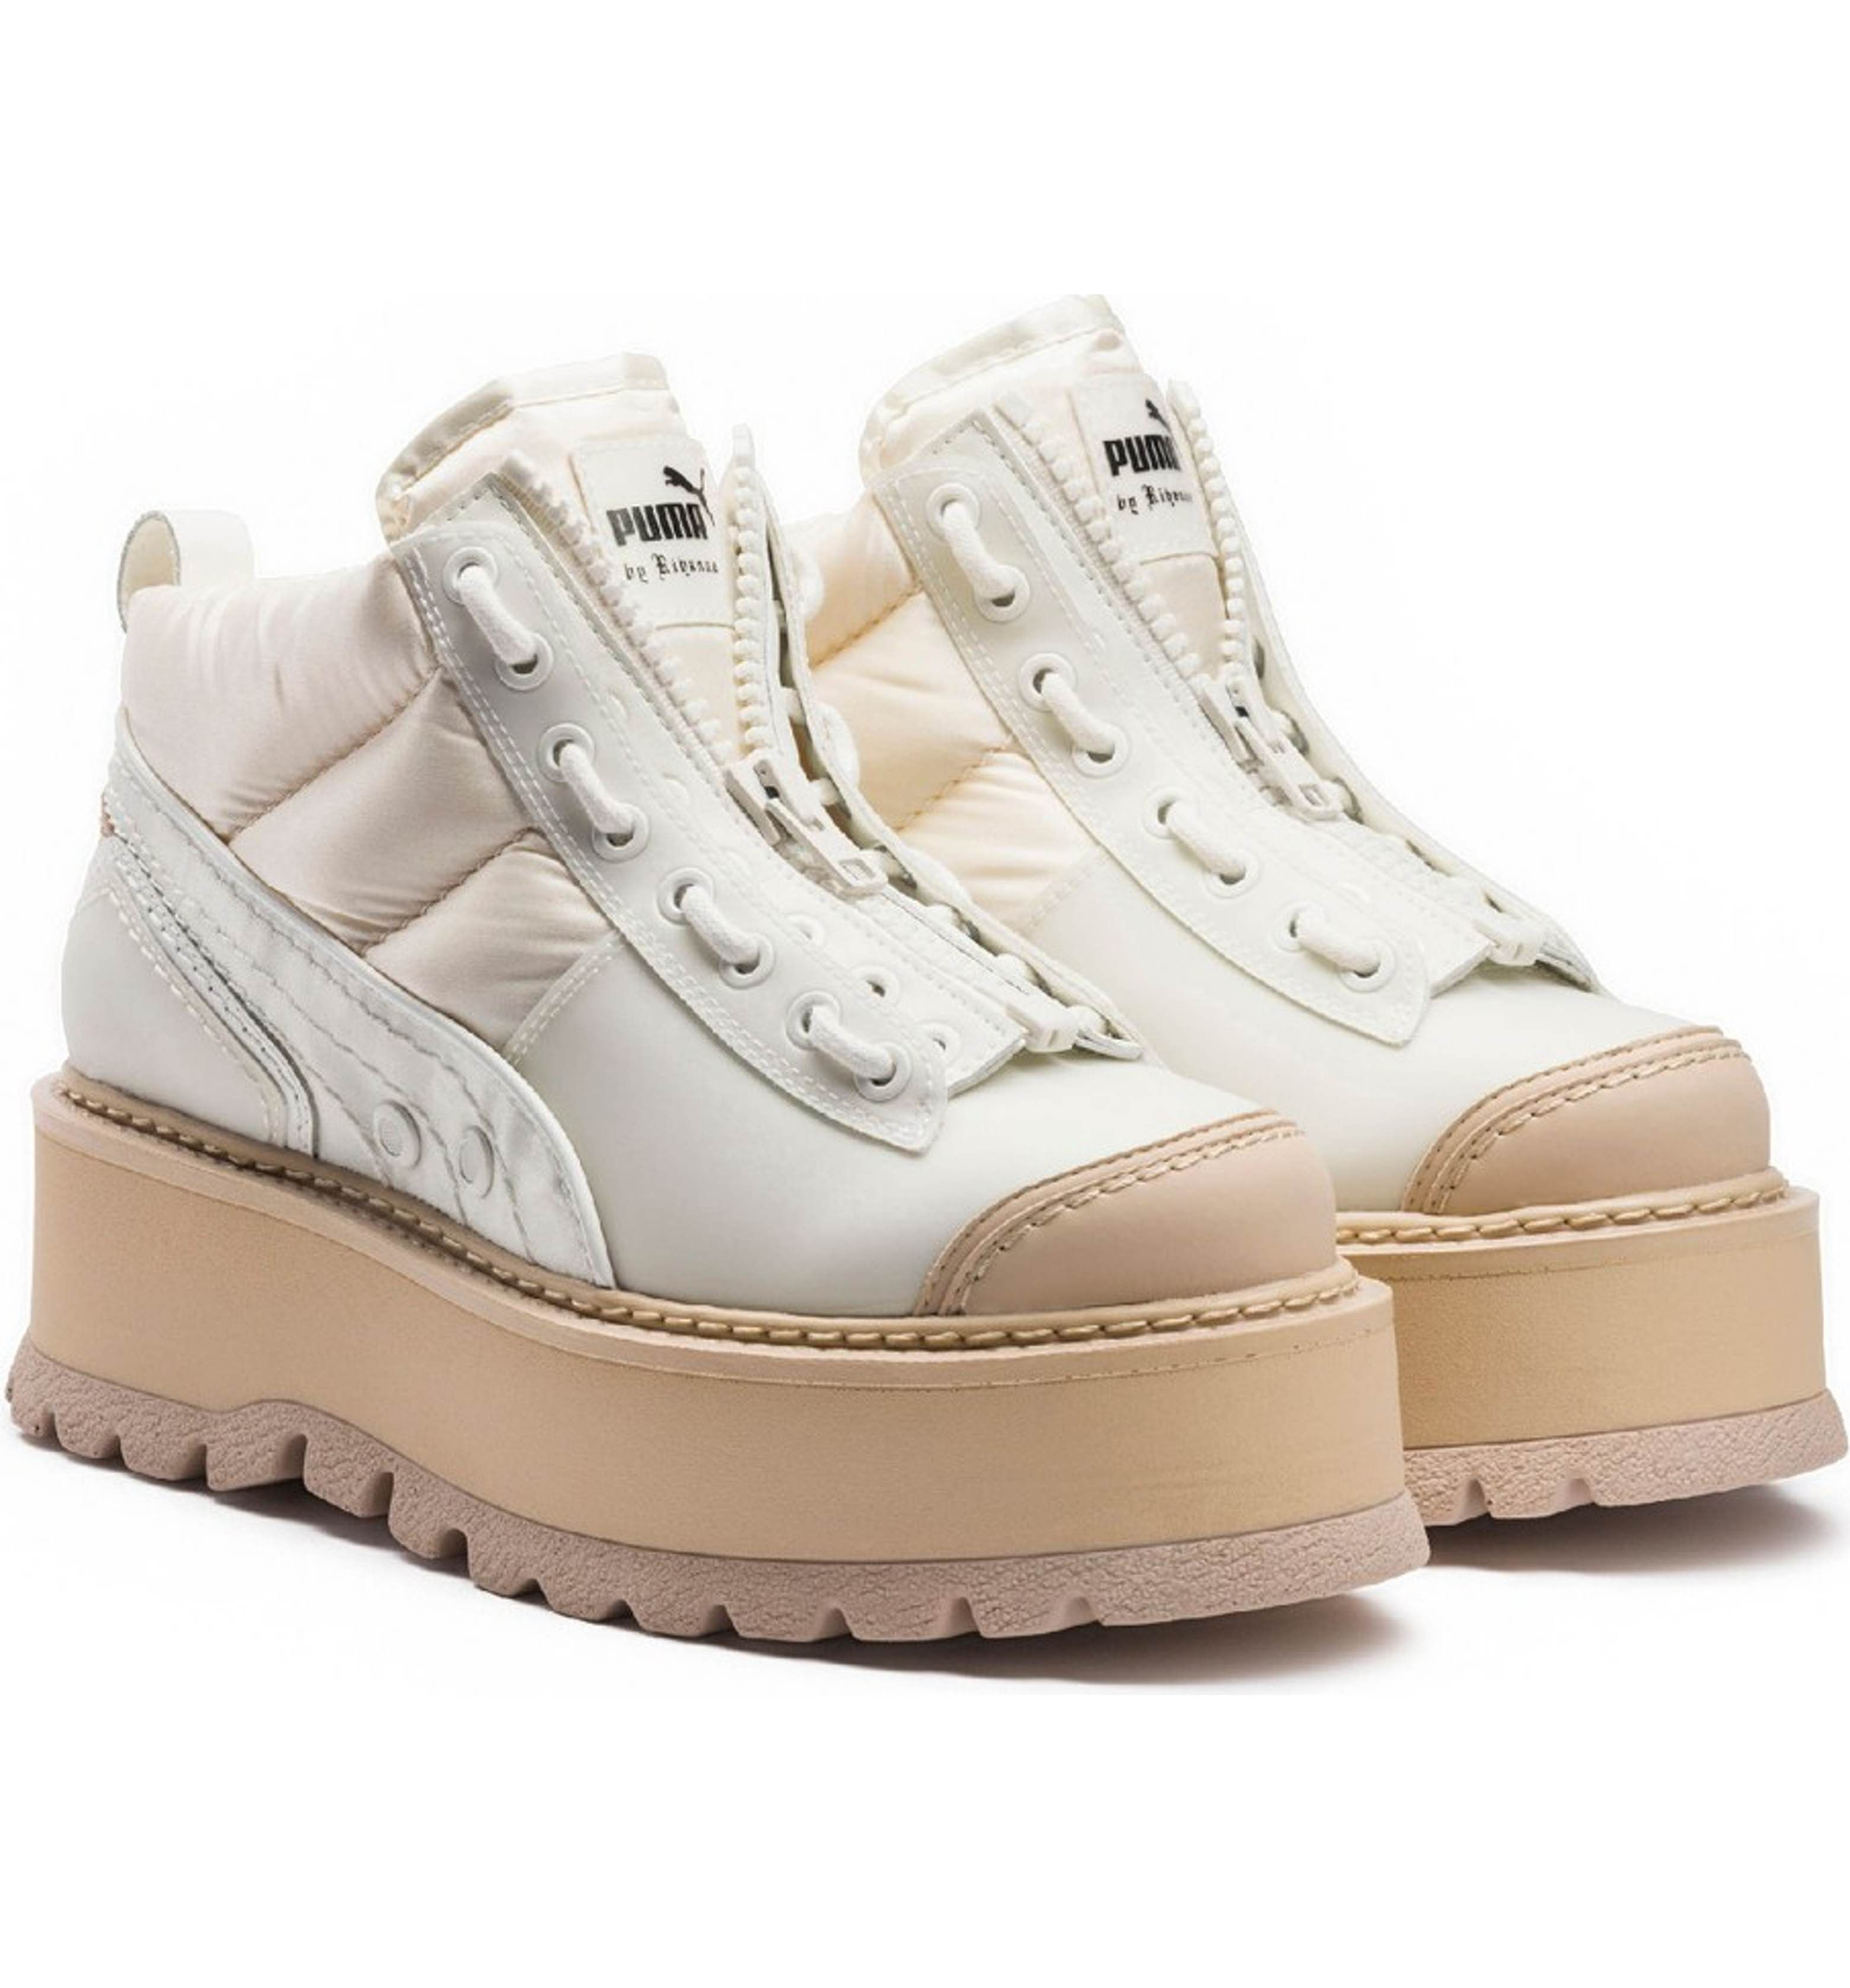 fenty boots stores